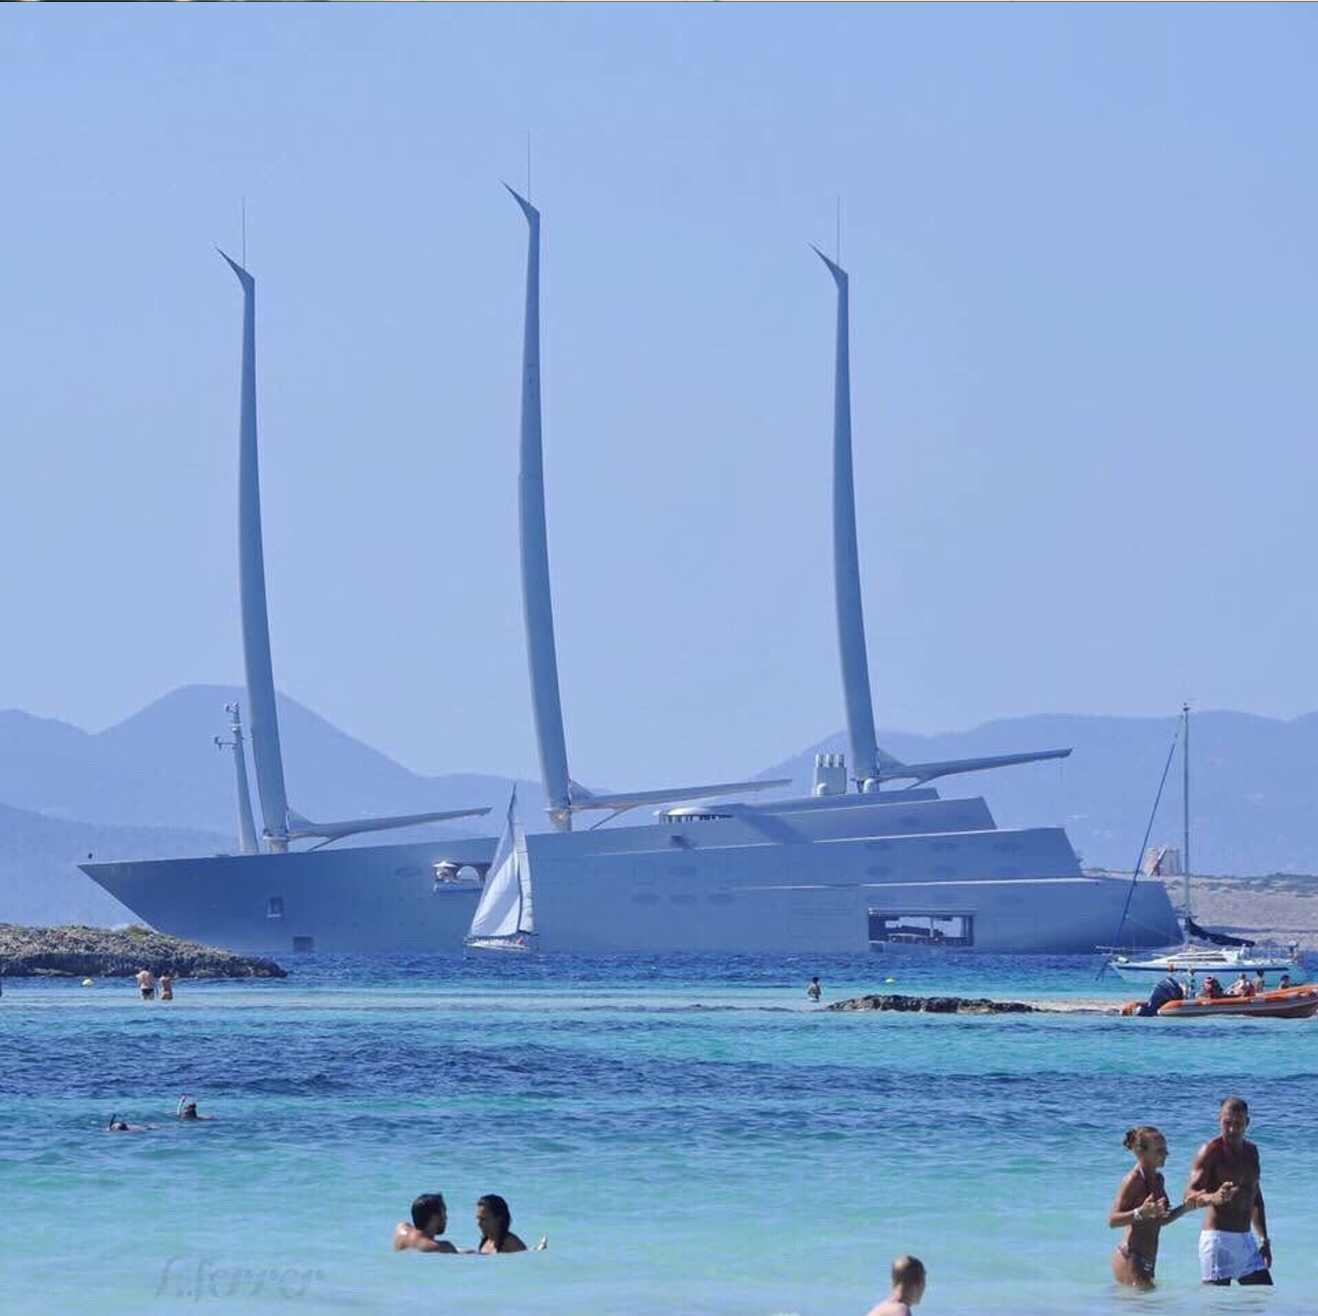 Sailing Yacht A Surprised Formentera S Visitors Yacht Charter